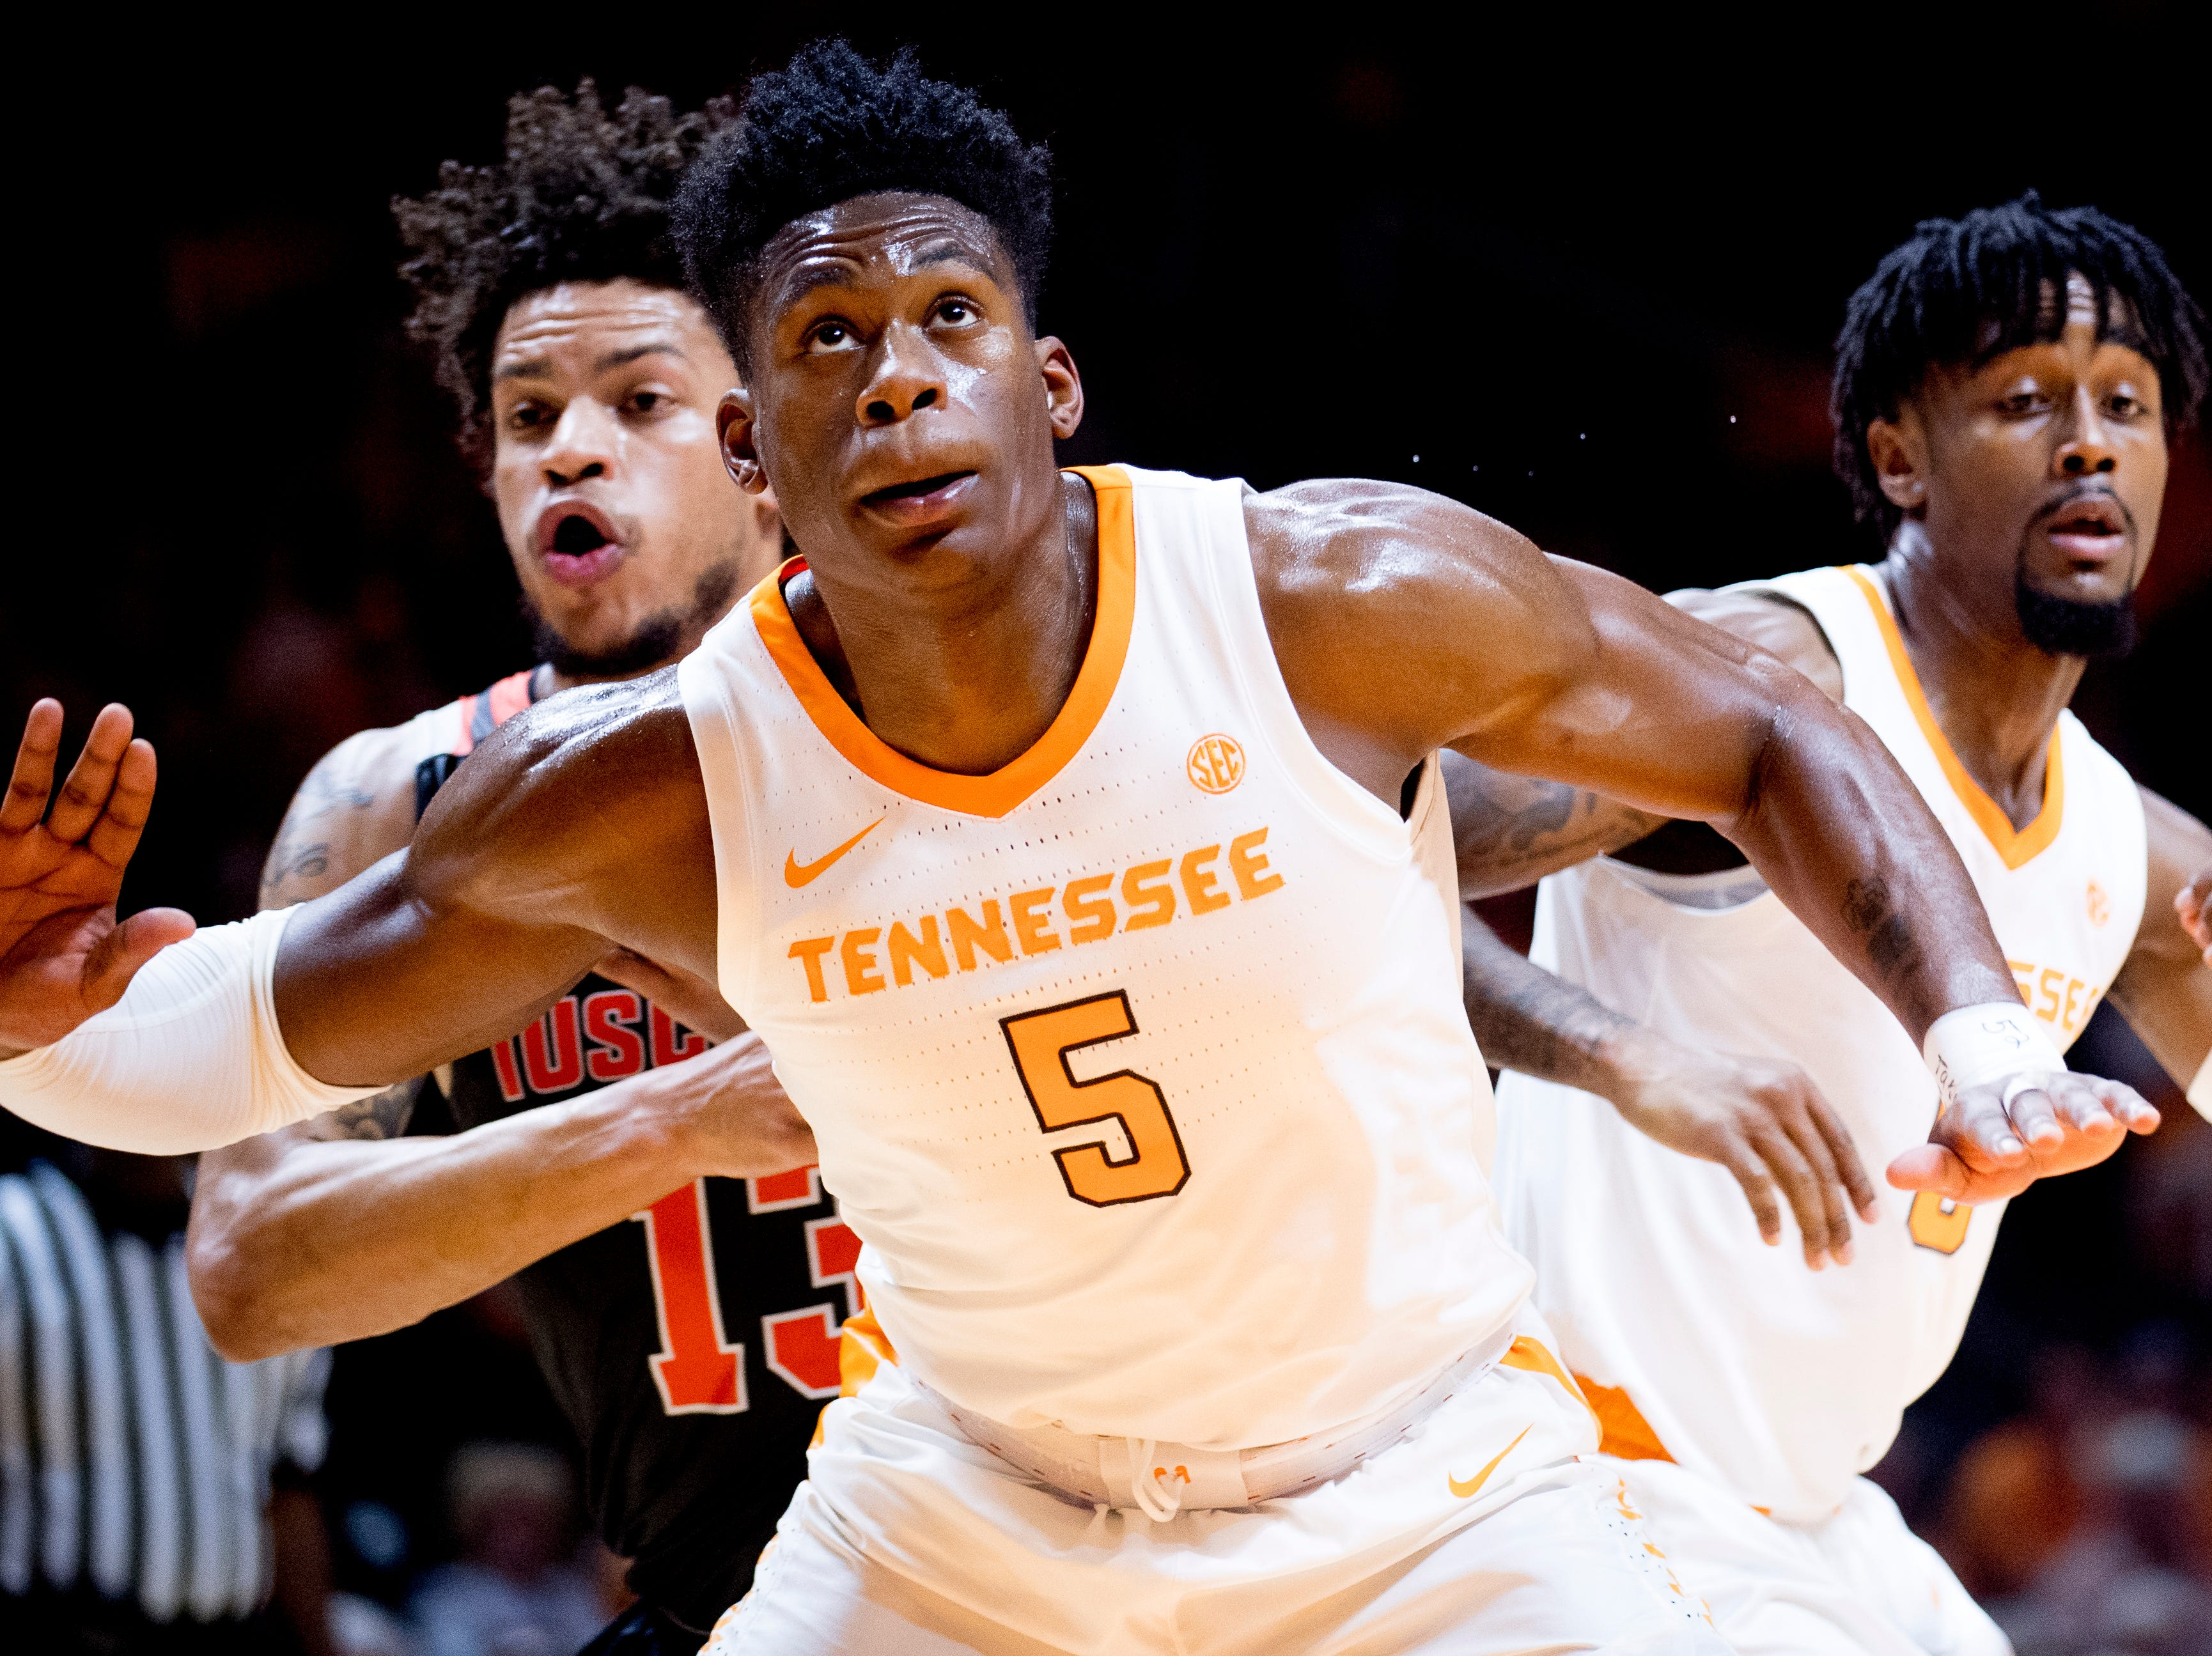 Tennessee guard Admiral Schofield (5) eyes the rebound past Tusculum forward Austin Hall (13) and Tennessee guard Jordan Bone (0) during a game between Tennessee and Tusculum at Thompson-Boling Arena in Knoxville, Tennessee on Wednesday, October 31, 2018.